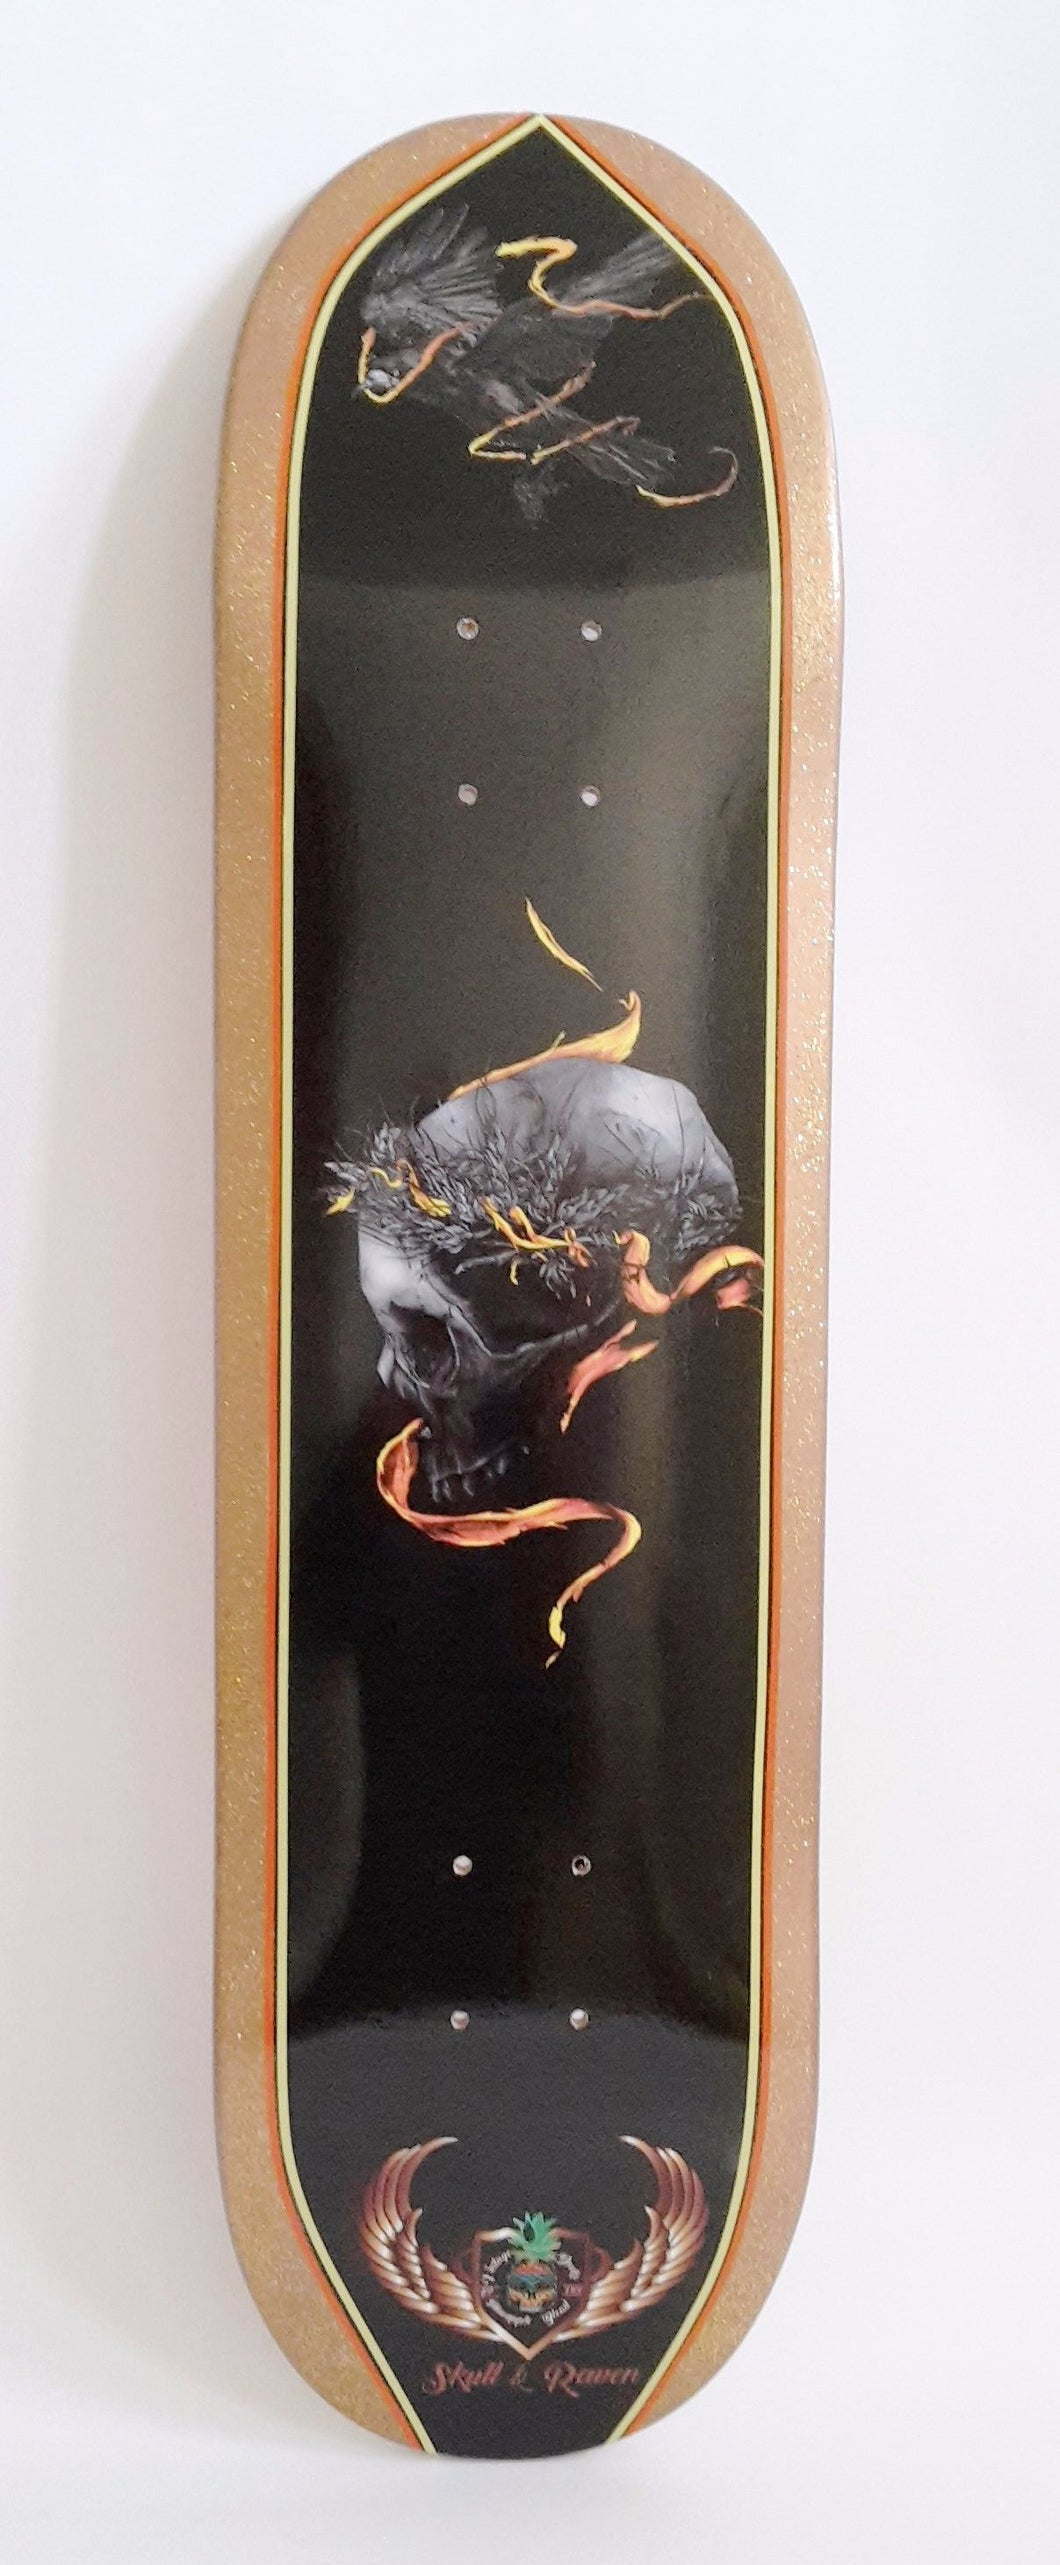 Skull & Raven Limited Edition Deck